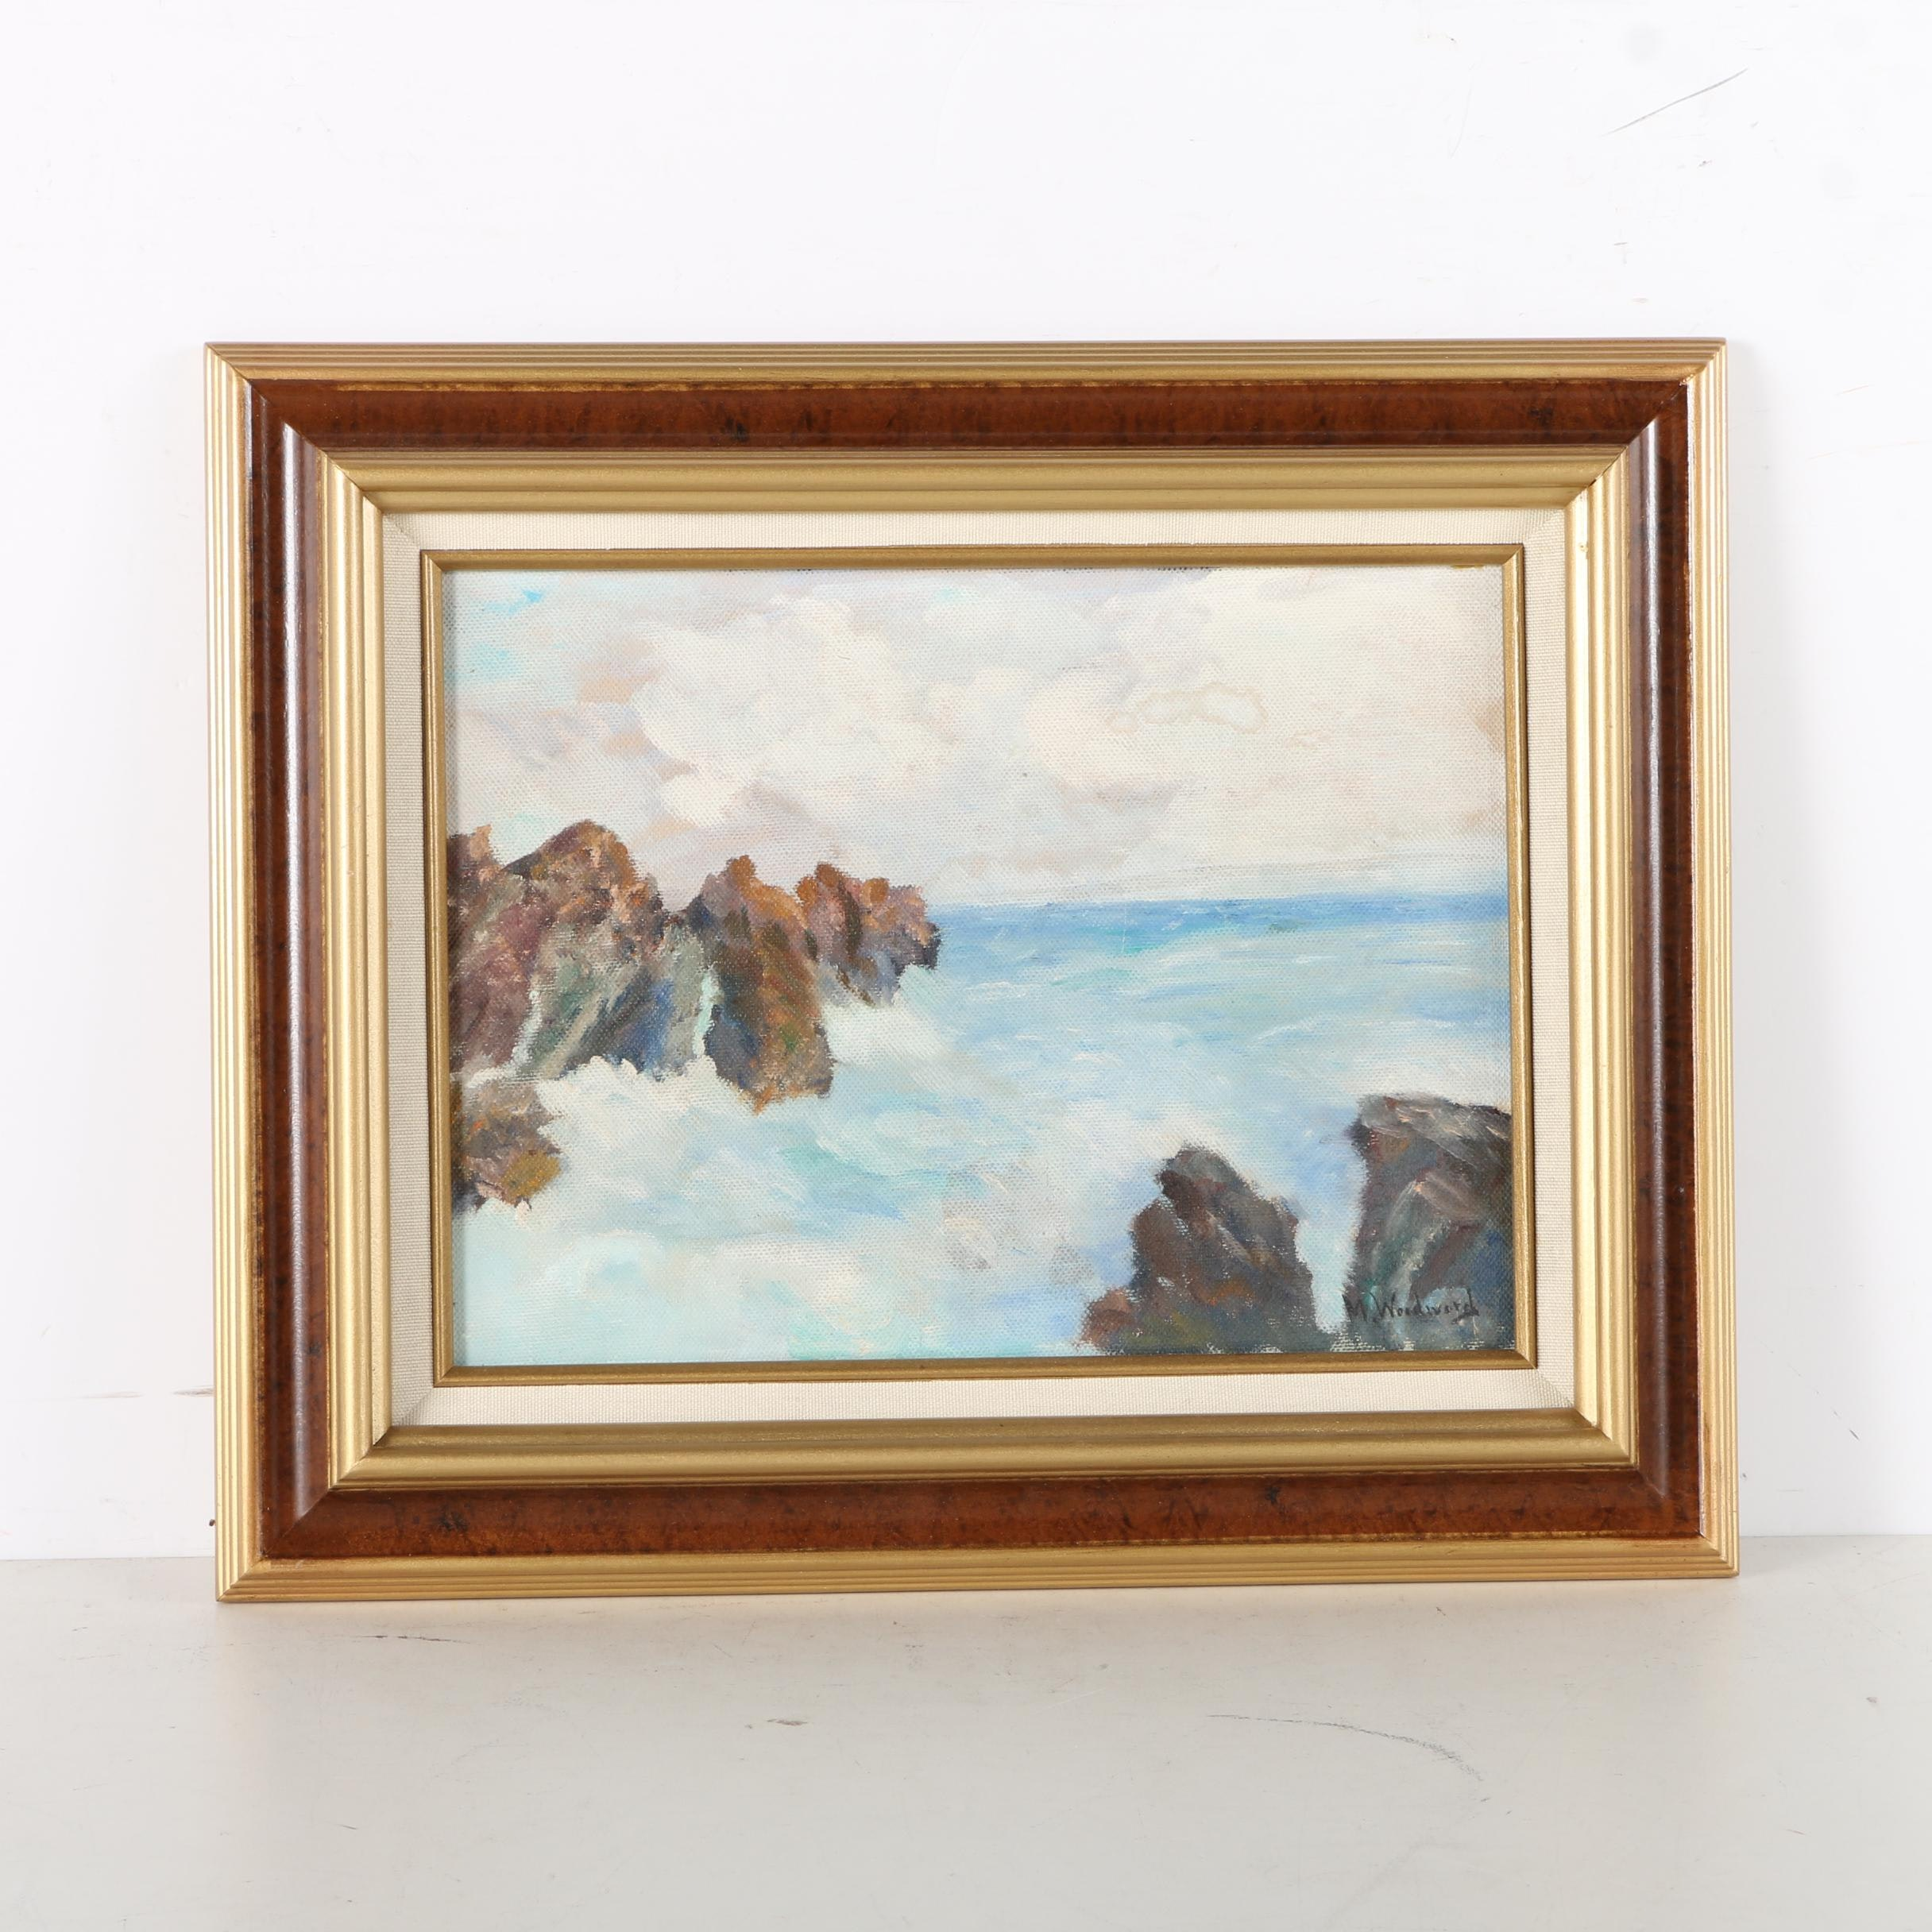 Study of Ocean on Canvas by Mabel May Woodward